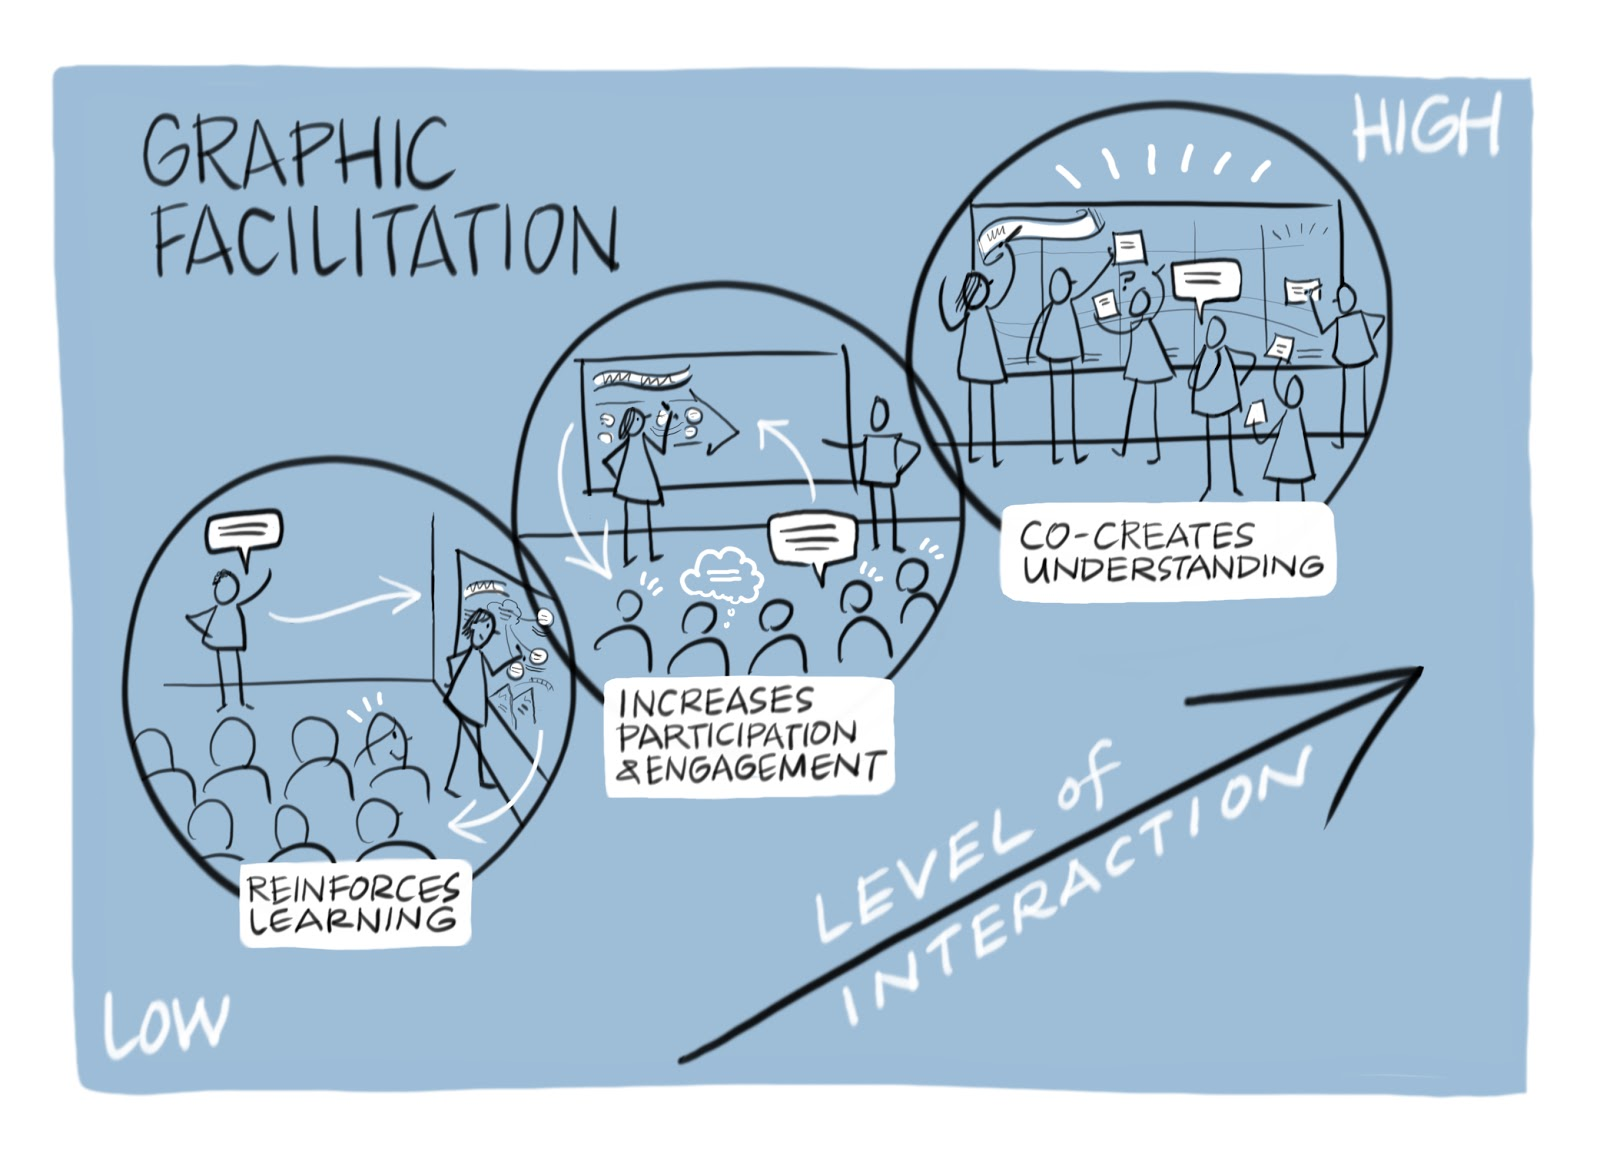 Renforce Learning Graphic Facilitation A Way To Reinforce Learning Increase